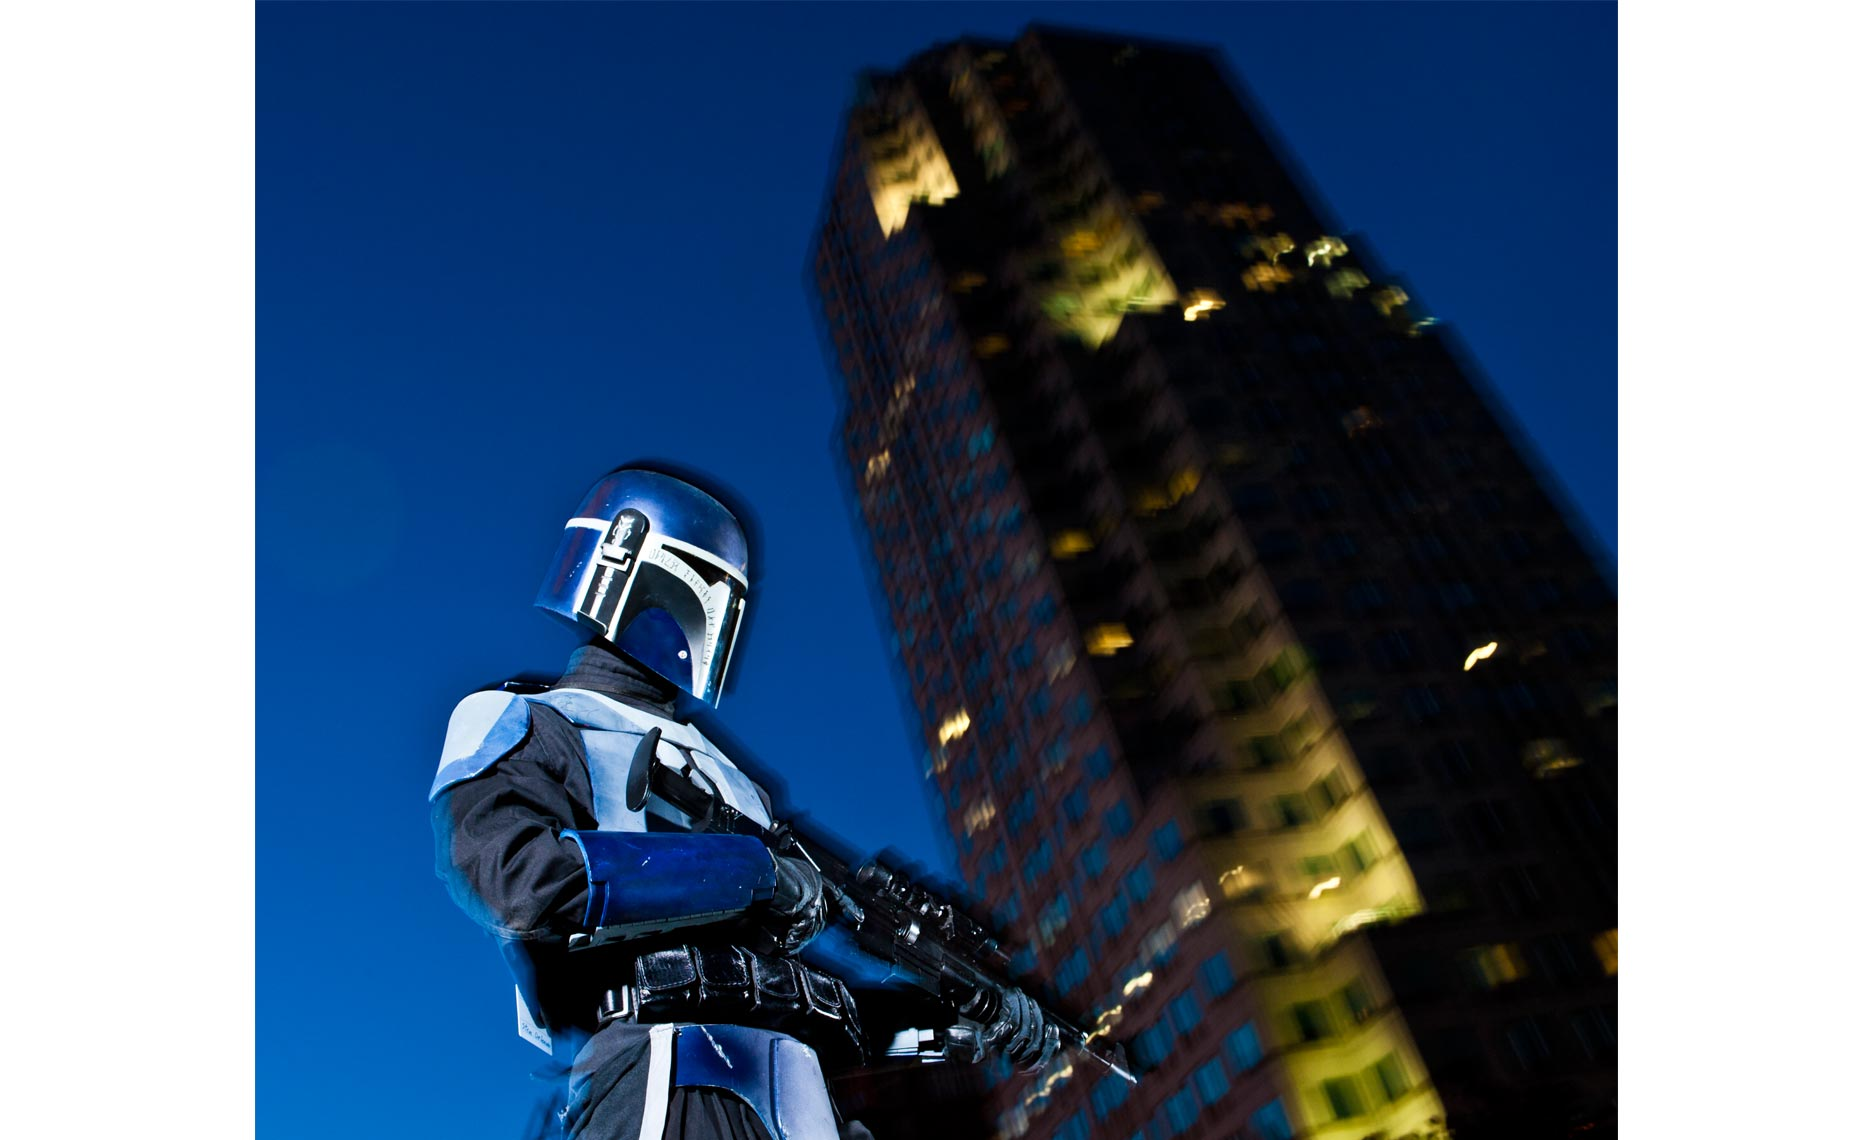 Raleigh Editorial photography Bryan Regan Star Wars